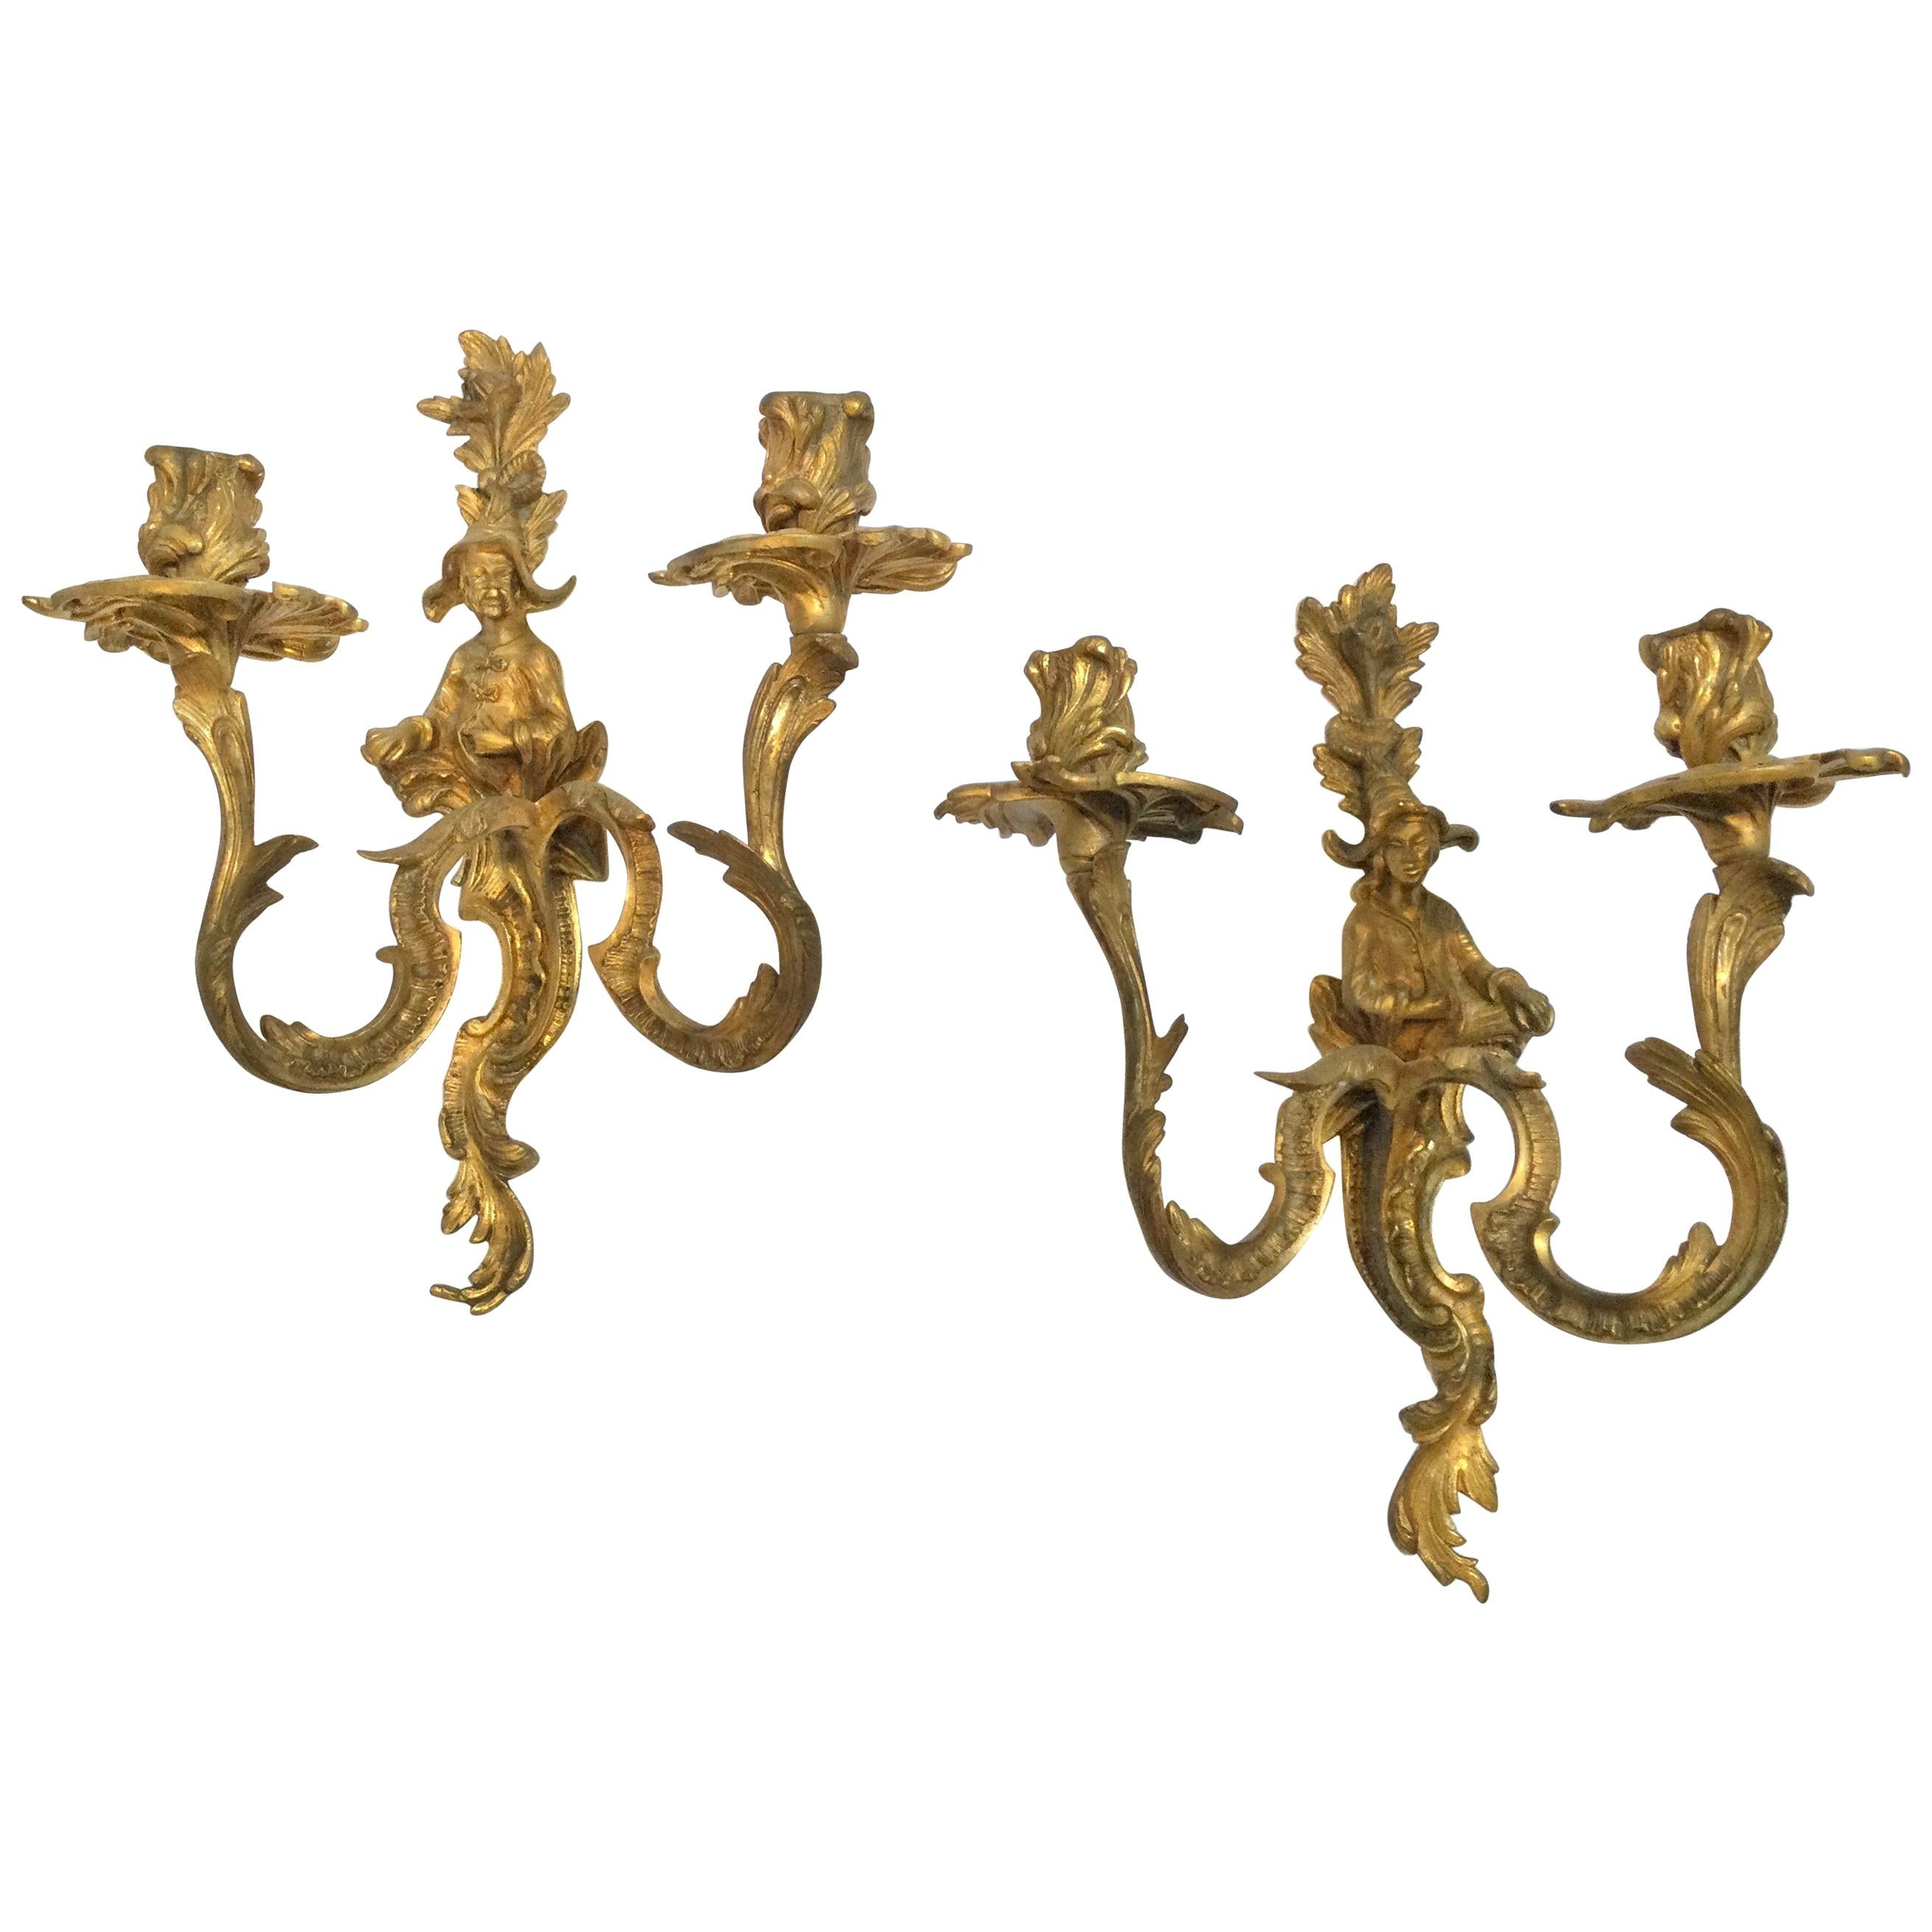 Pair of Chinoiserie Double Candle Light Antique Gilt Bronze Figural Sconces